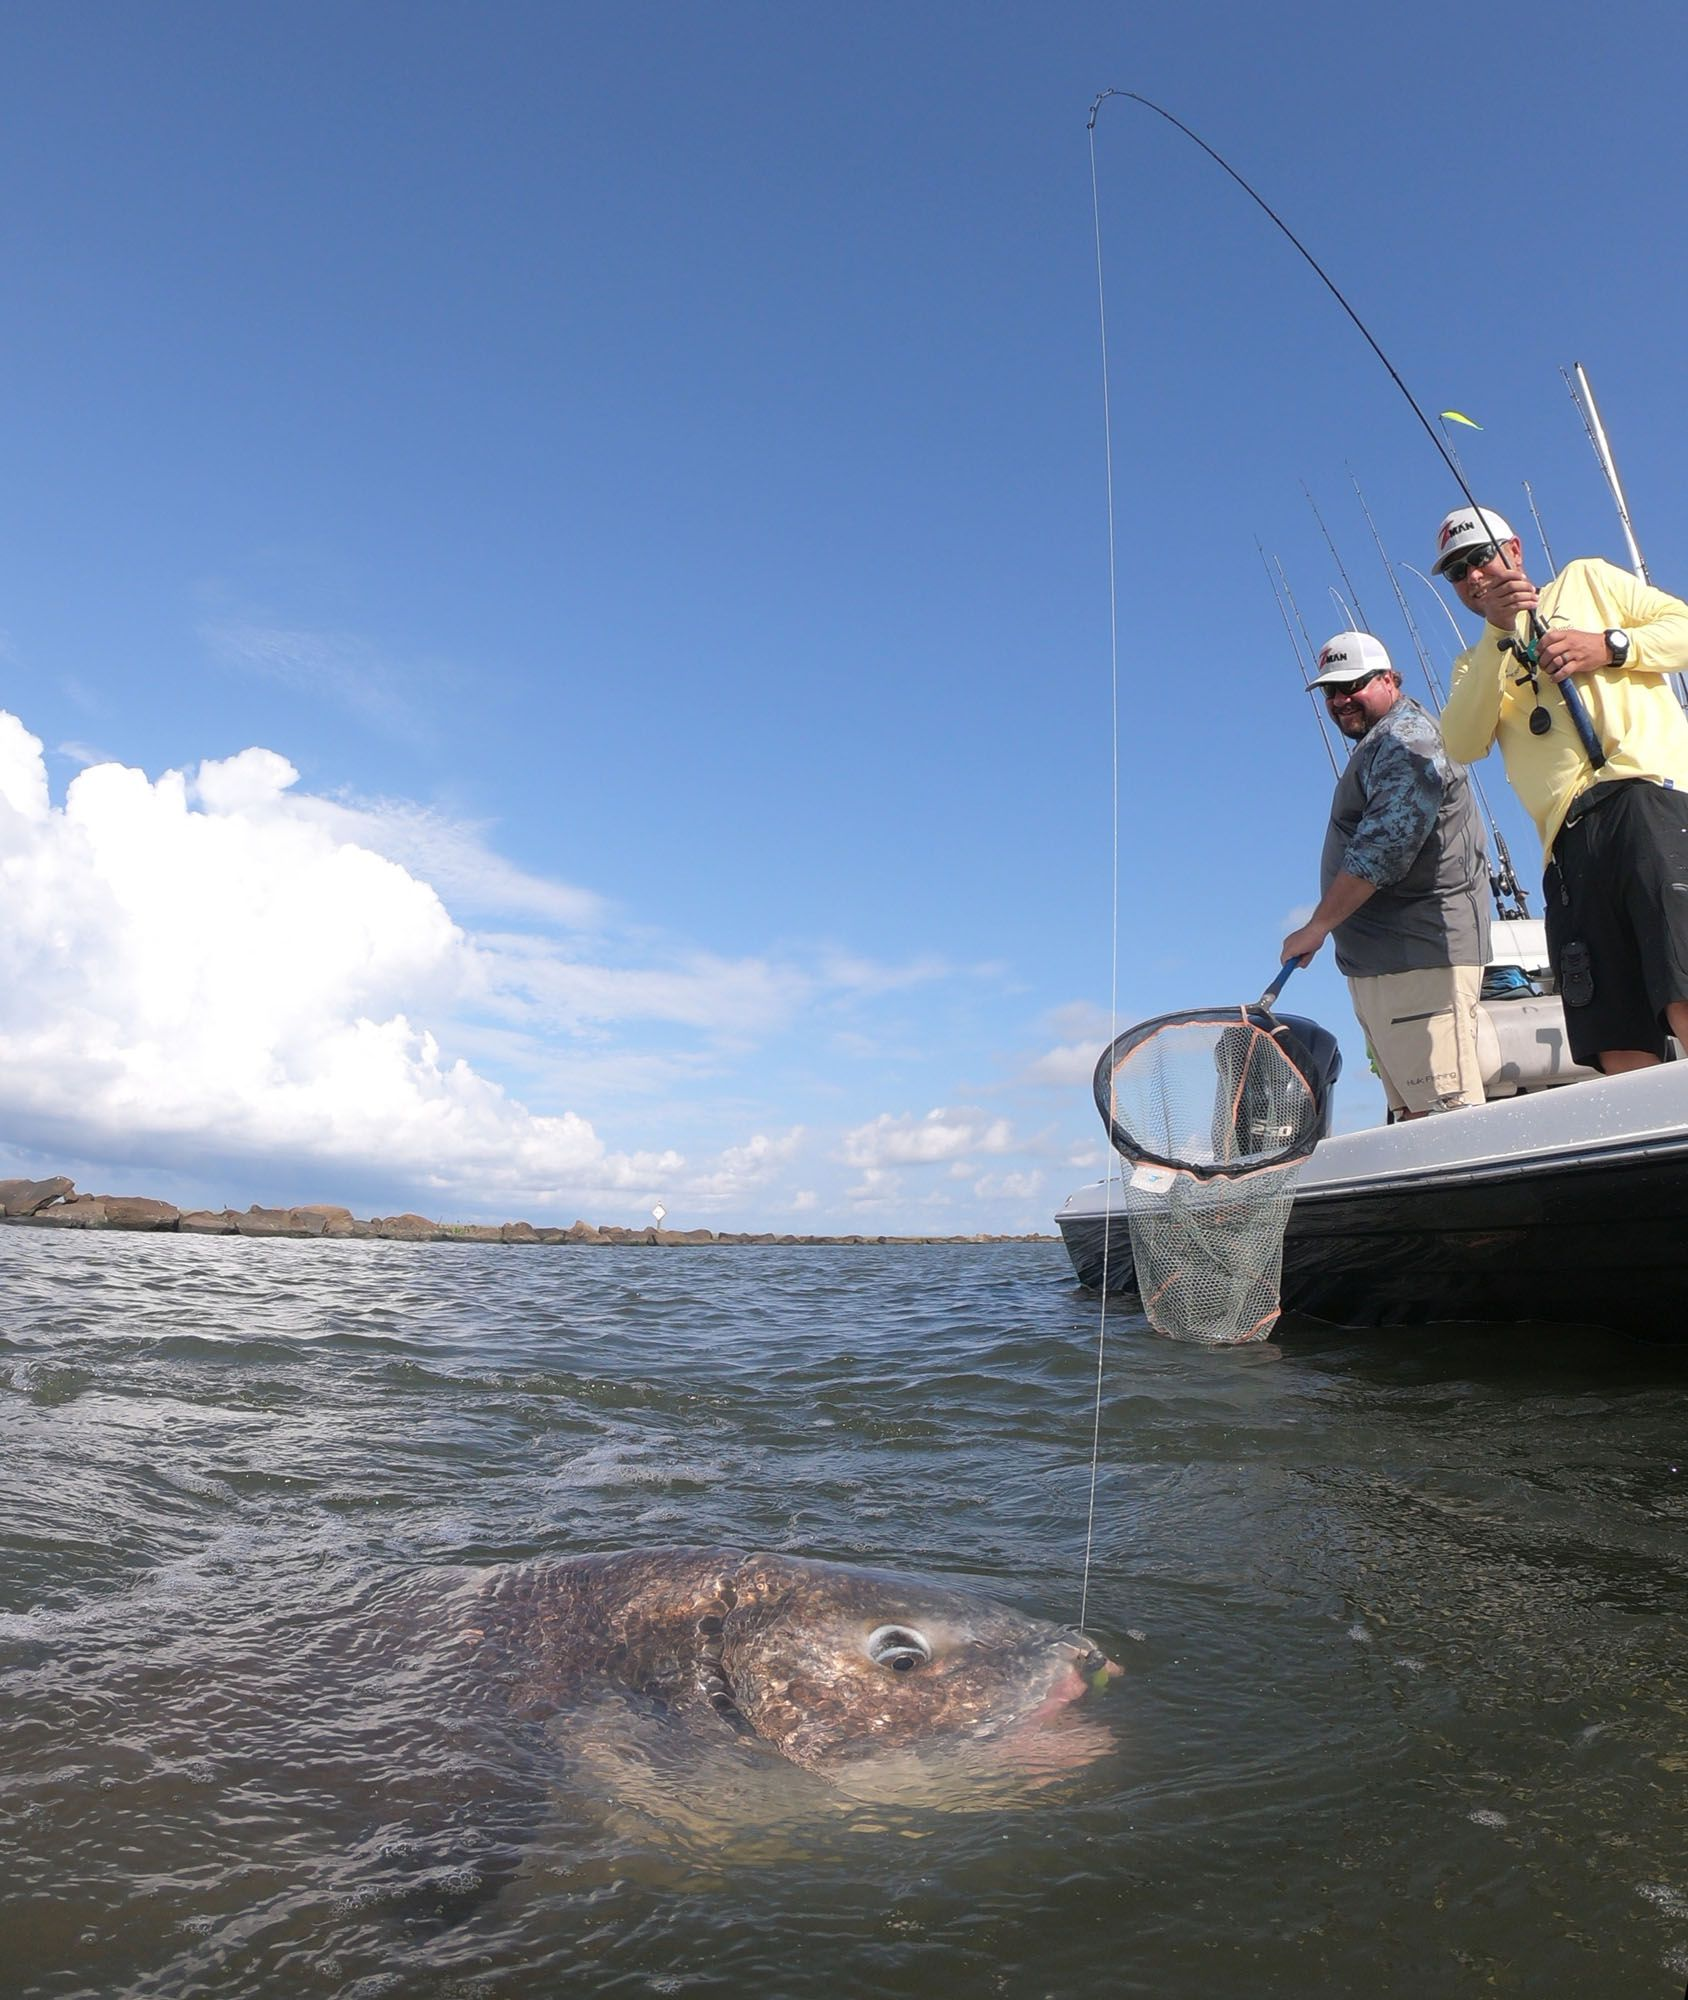 A few miles away, we had a bit of time left in fair skies before the rain caught up to us, so we make a few casts at the outer jetty, where Obiol quickly showed us how to hook a black drum on a Z-man bait.